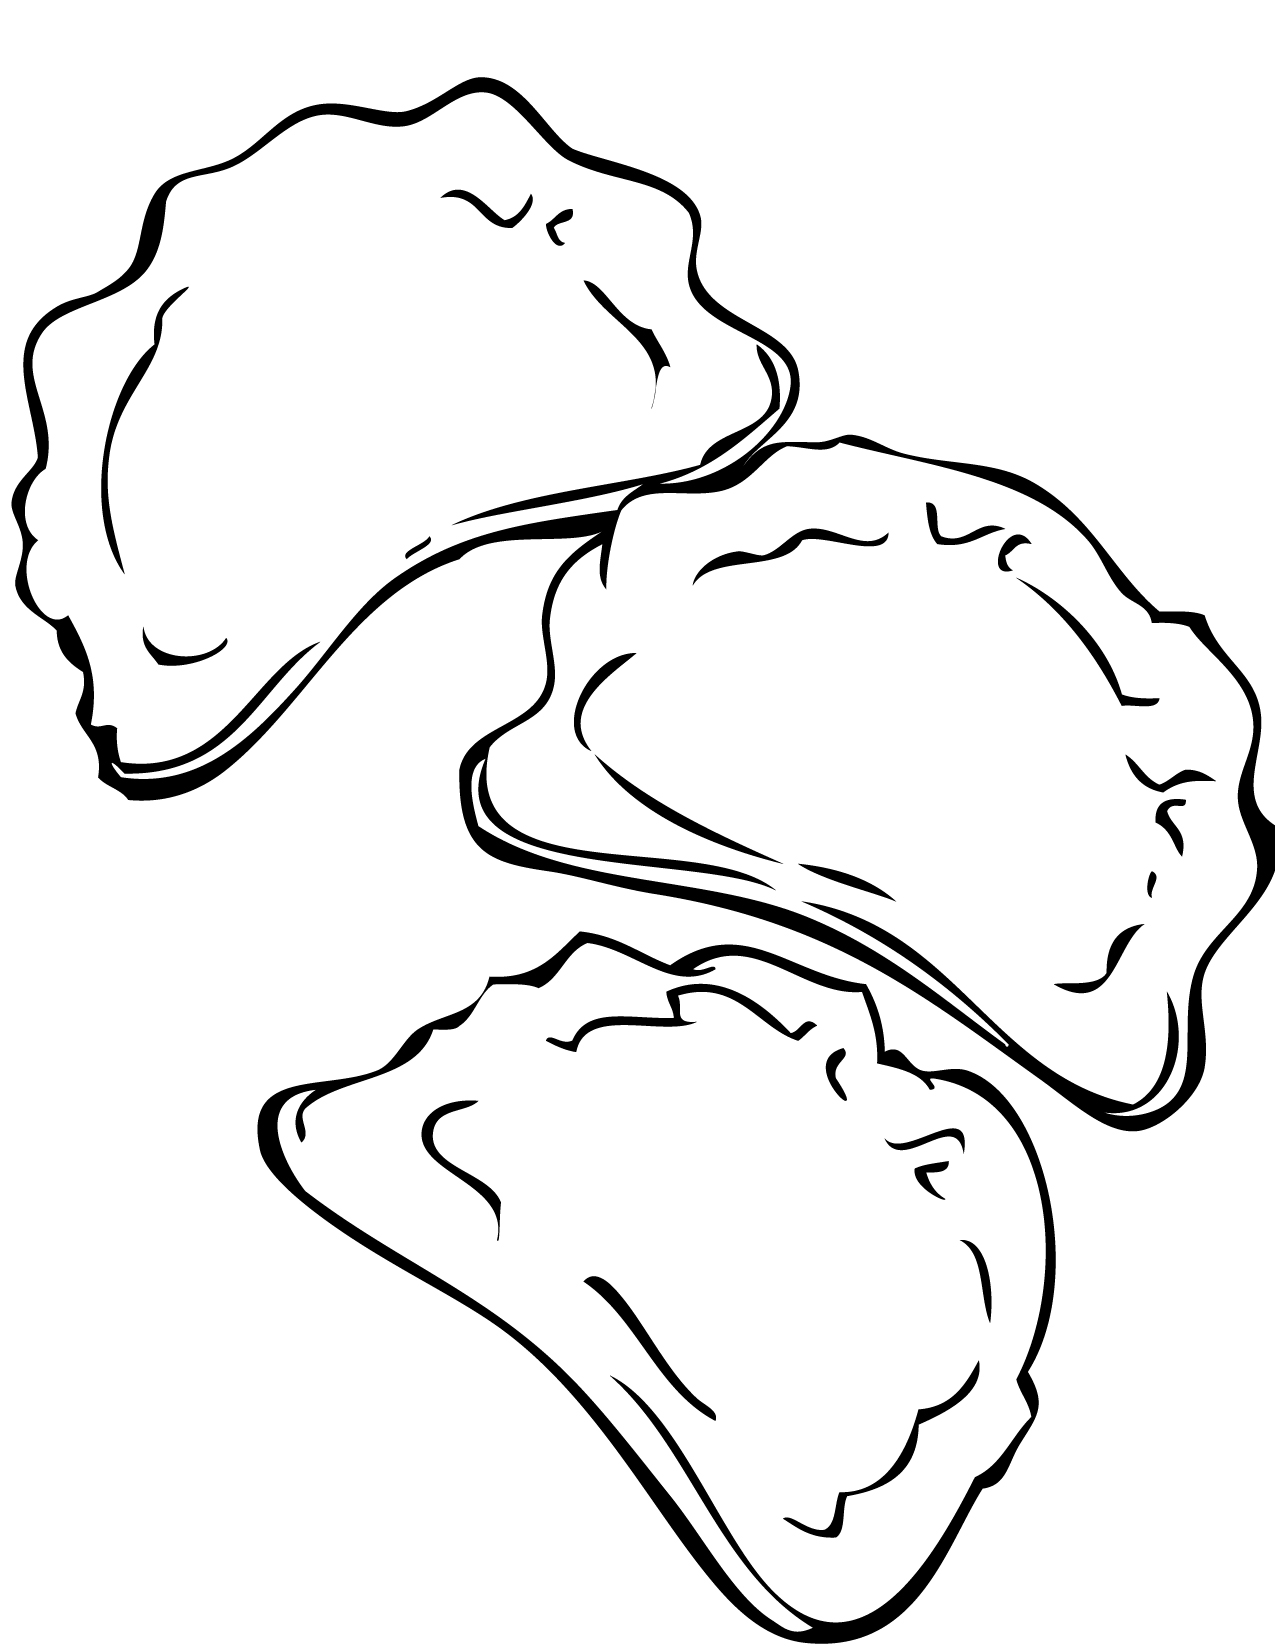 Chinese Dumpling Drawing Jiaozi Dumplings